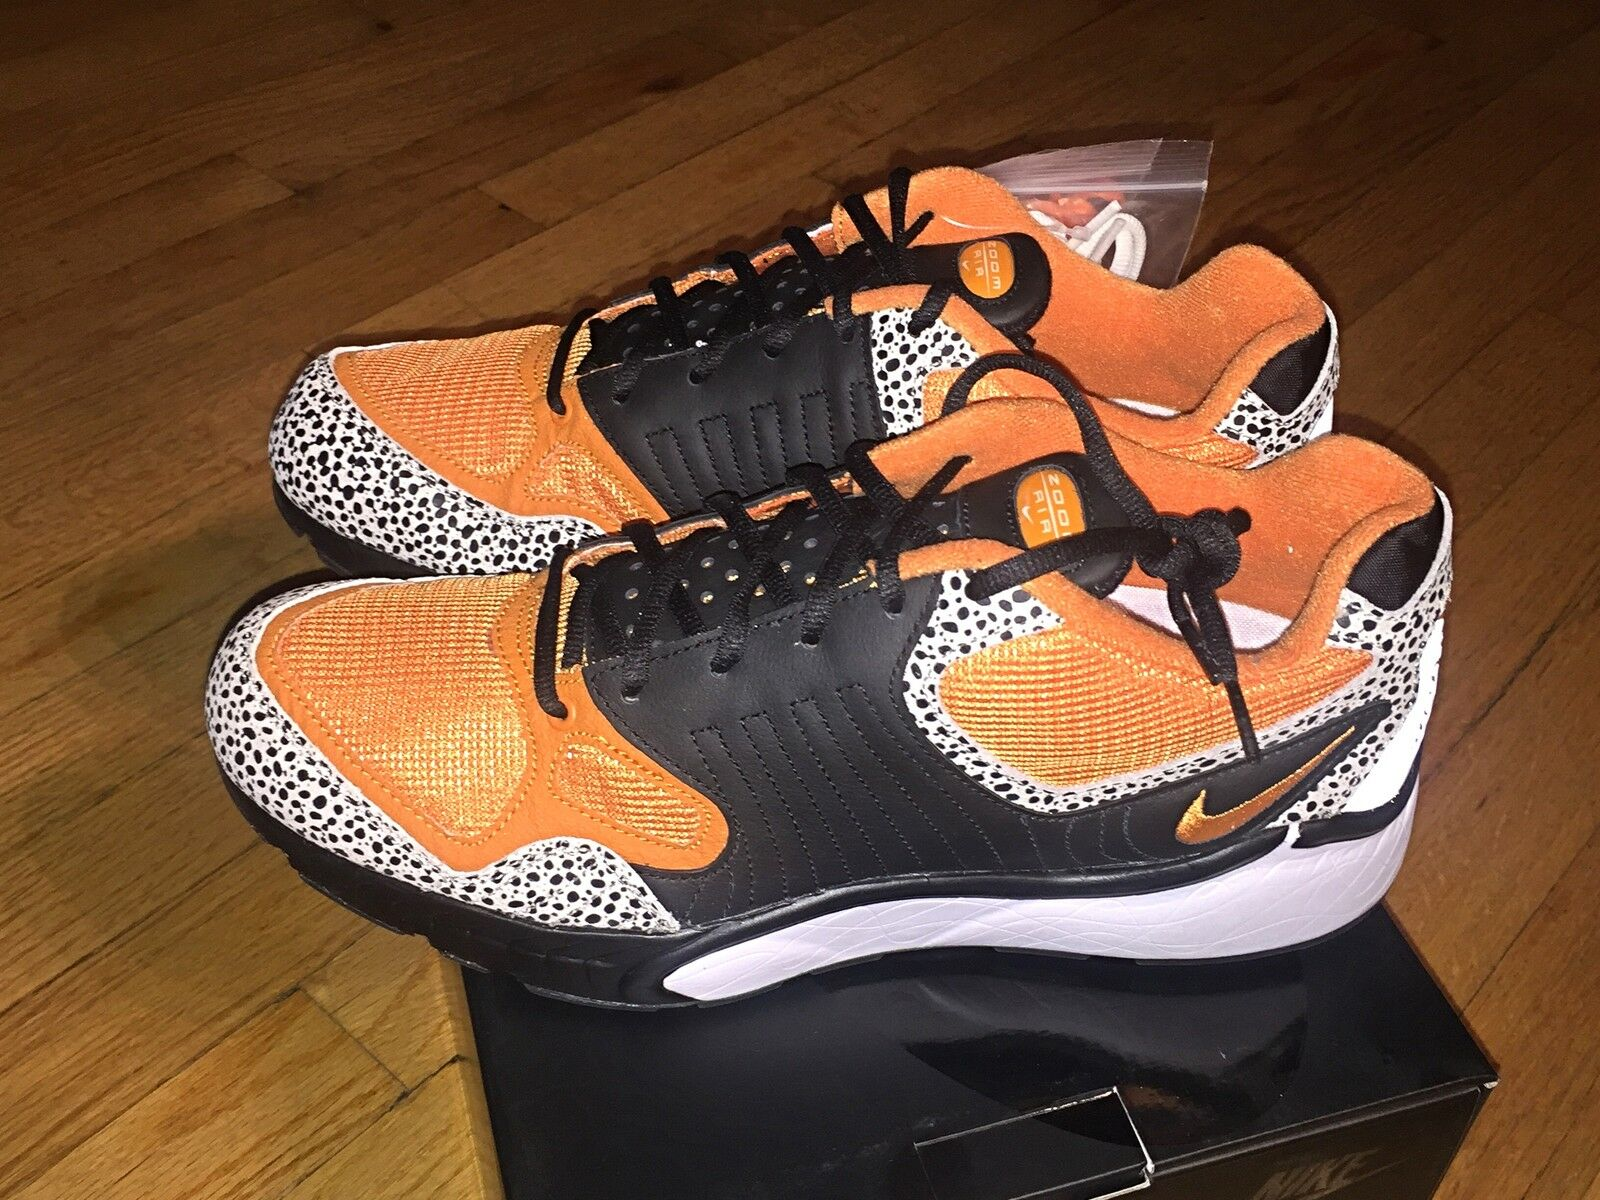 Nike Air Zoom Talaria '16 size 11.5 BRAND NEW with box & Invoice